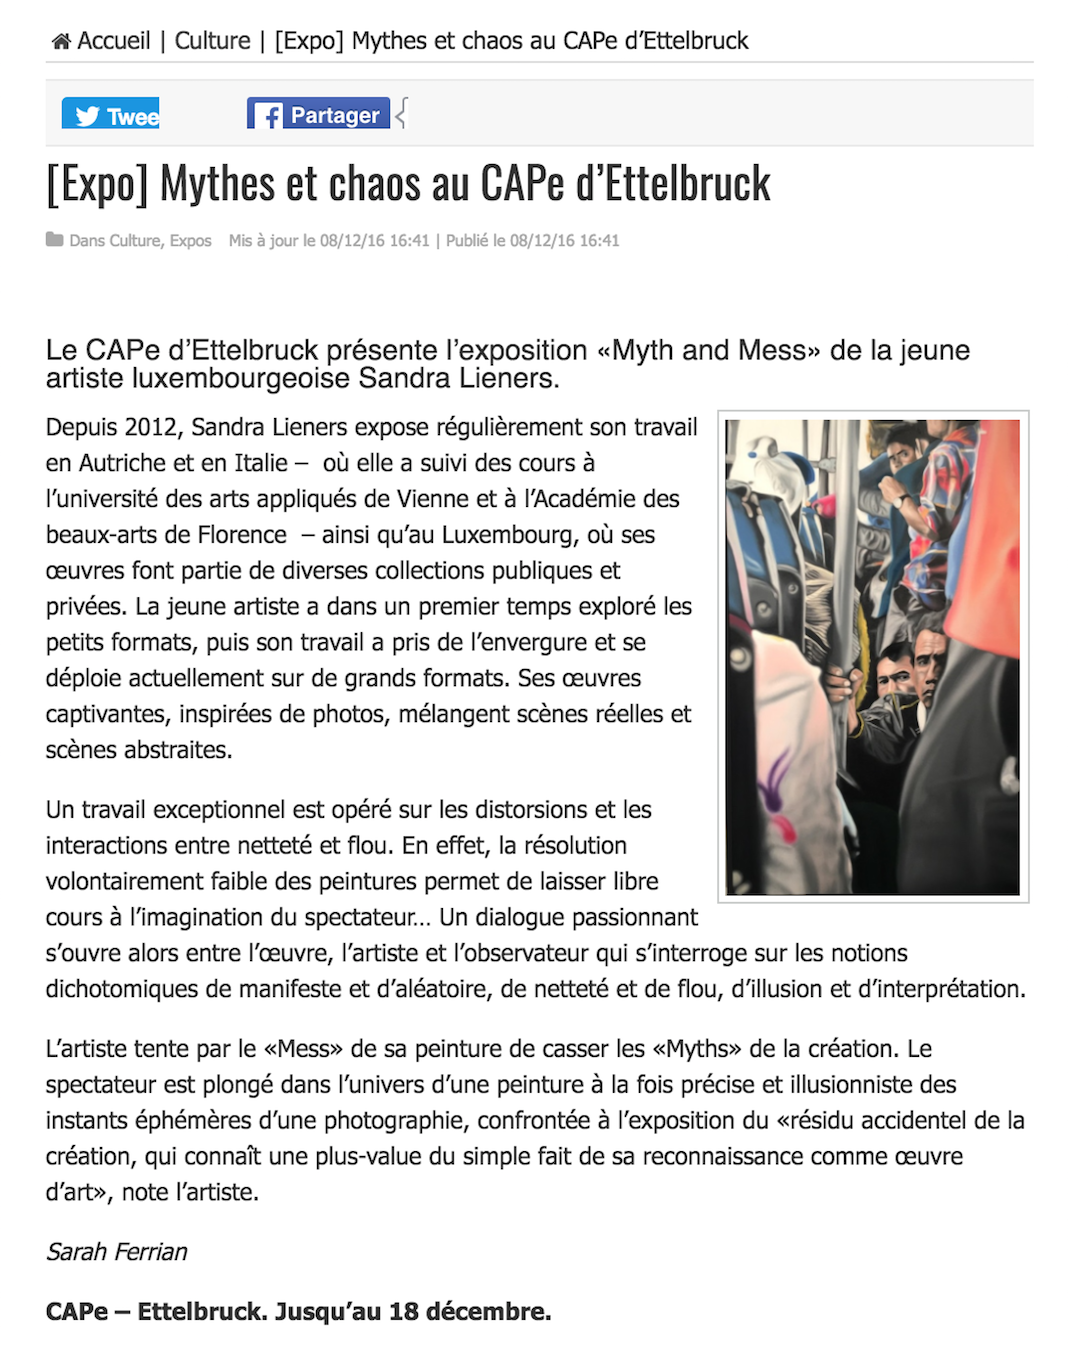 (expo) mythes et chaos au CAPE d'Ettelbruck | le quotidien | november '16 | LUX